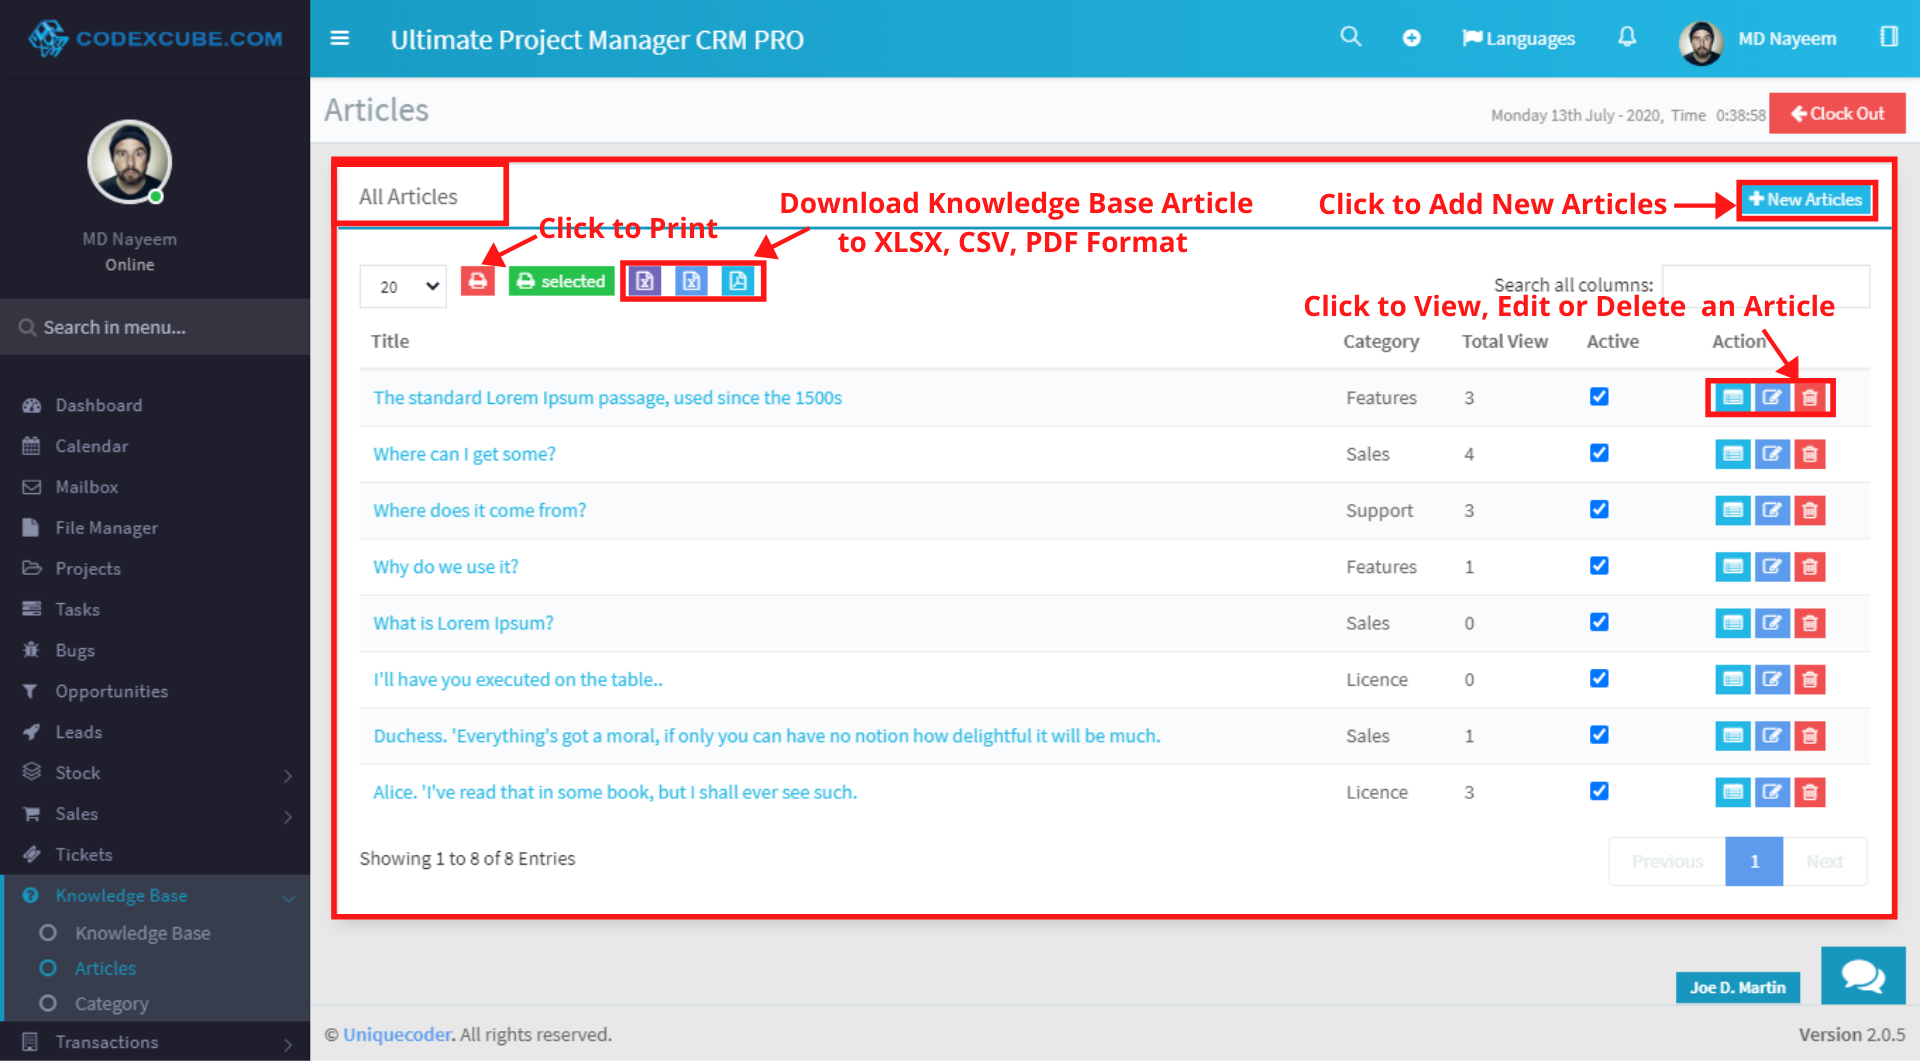 Knowledge Base Articles